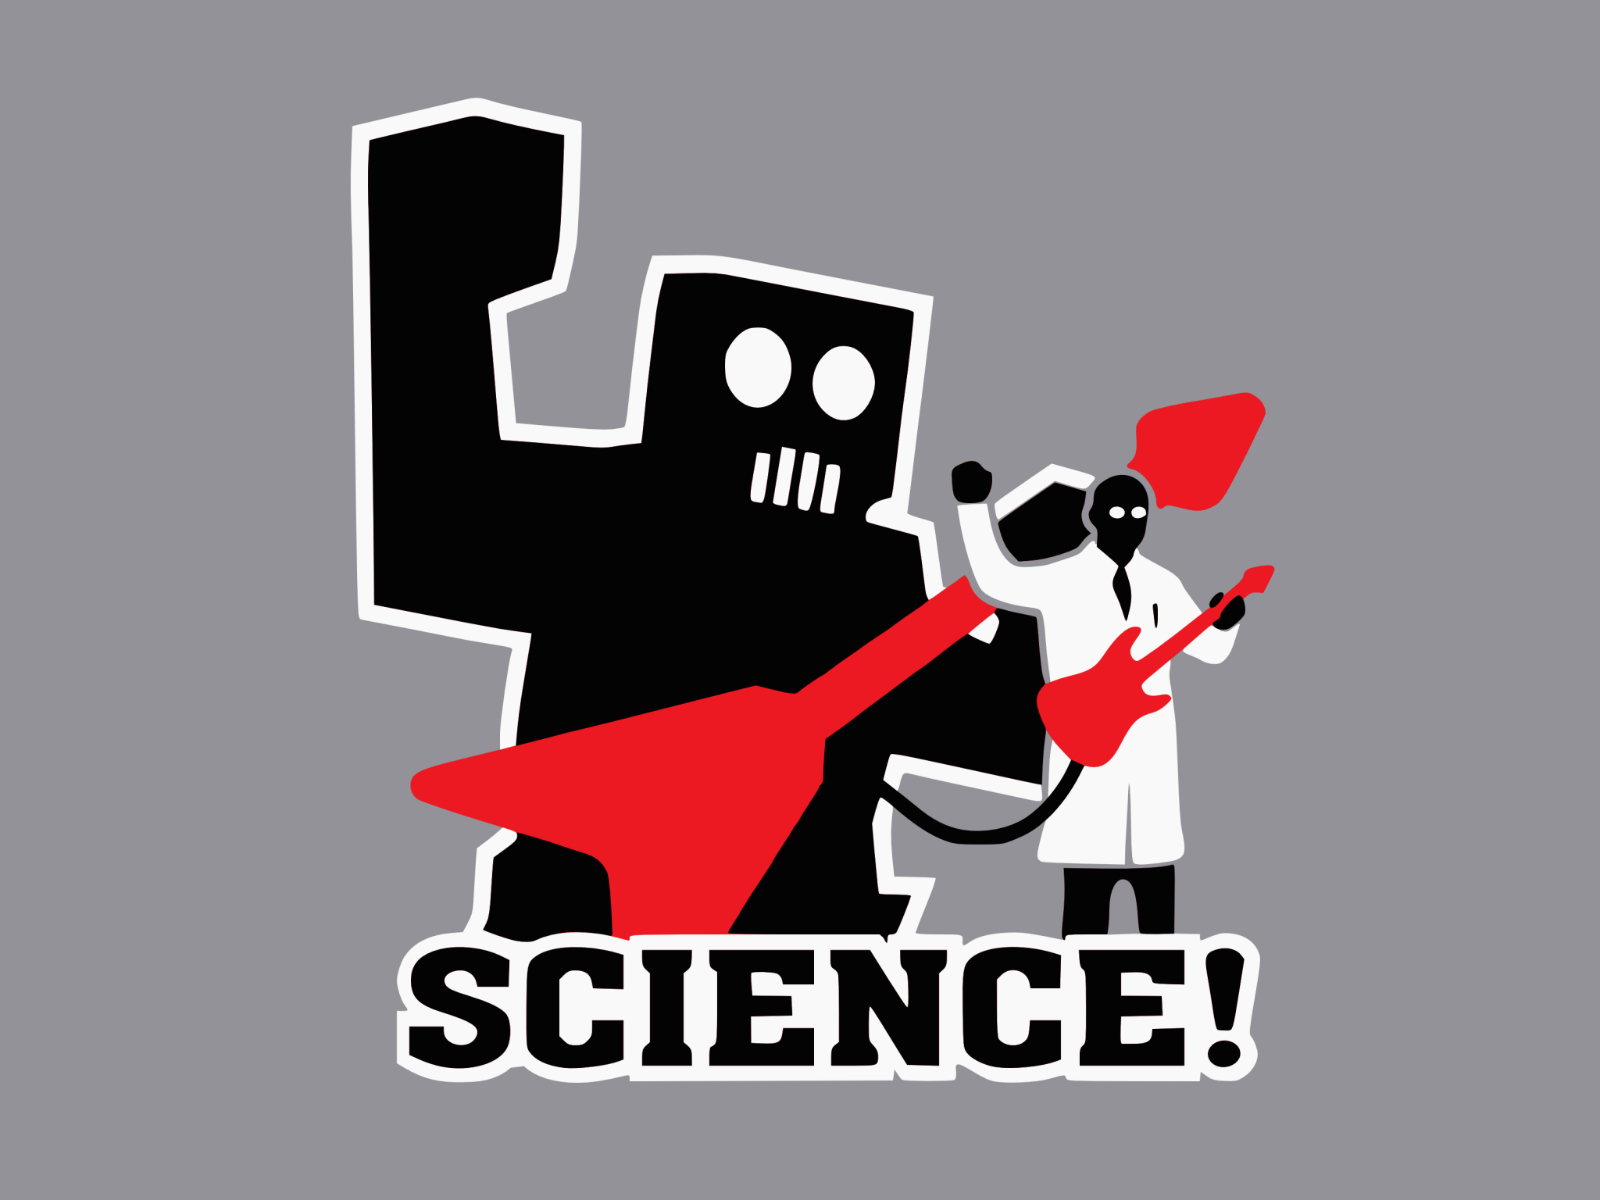 science funny wallpapers illustration anime backgrounds scientists shirts social pc awesome robot rocks tee advertising internet 3d robots stand